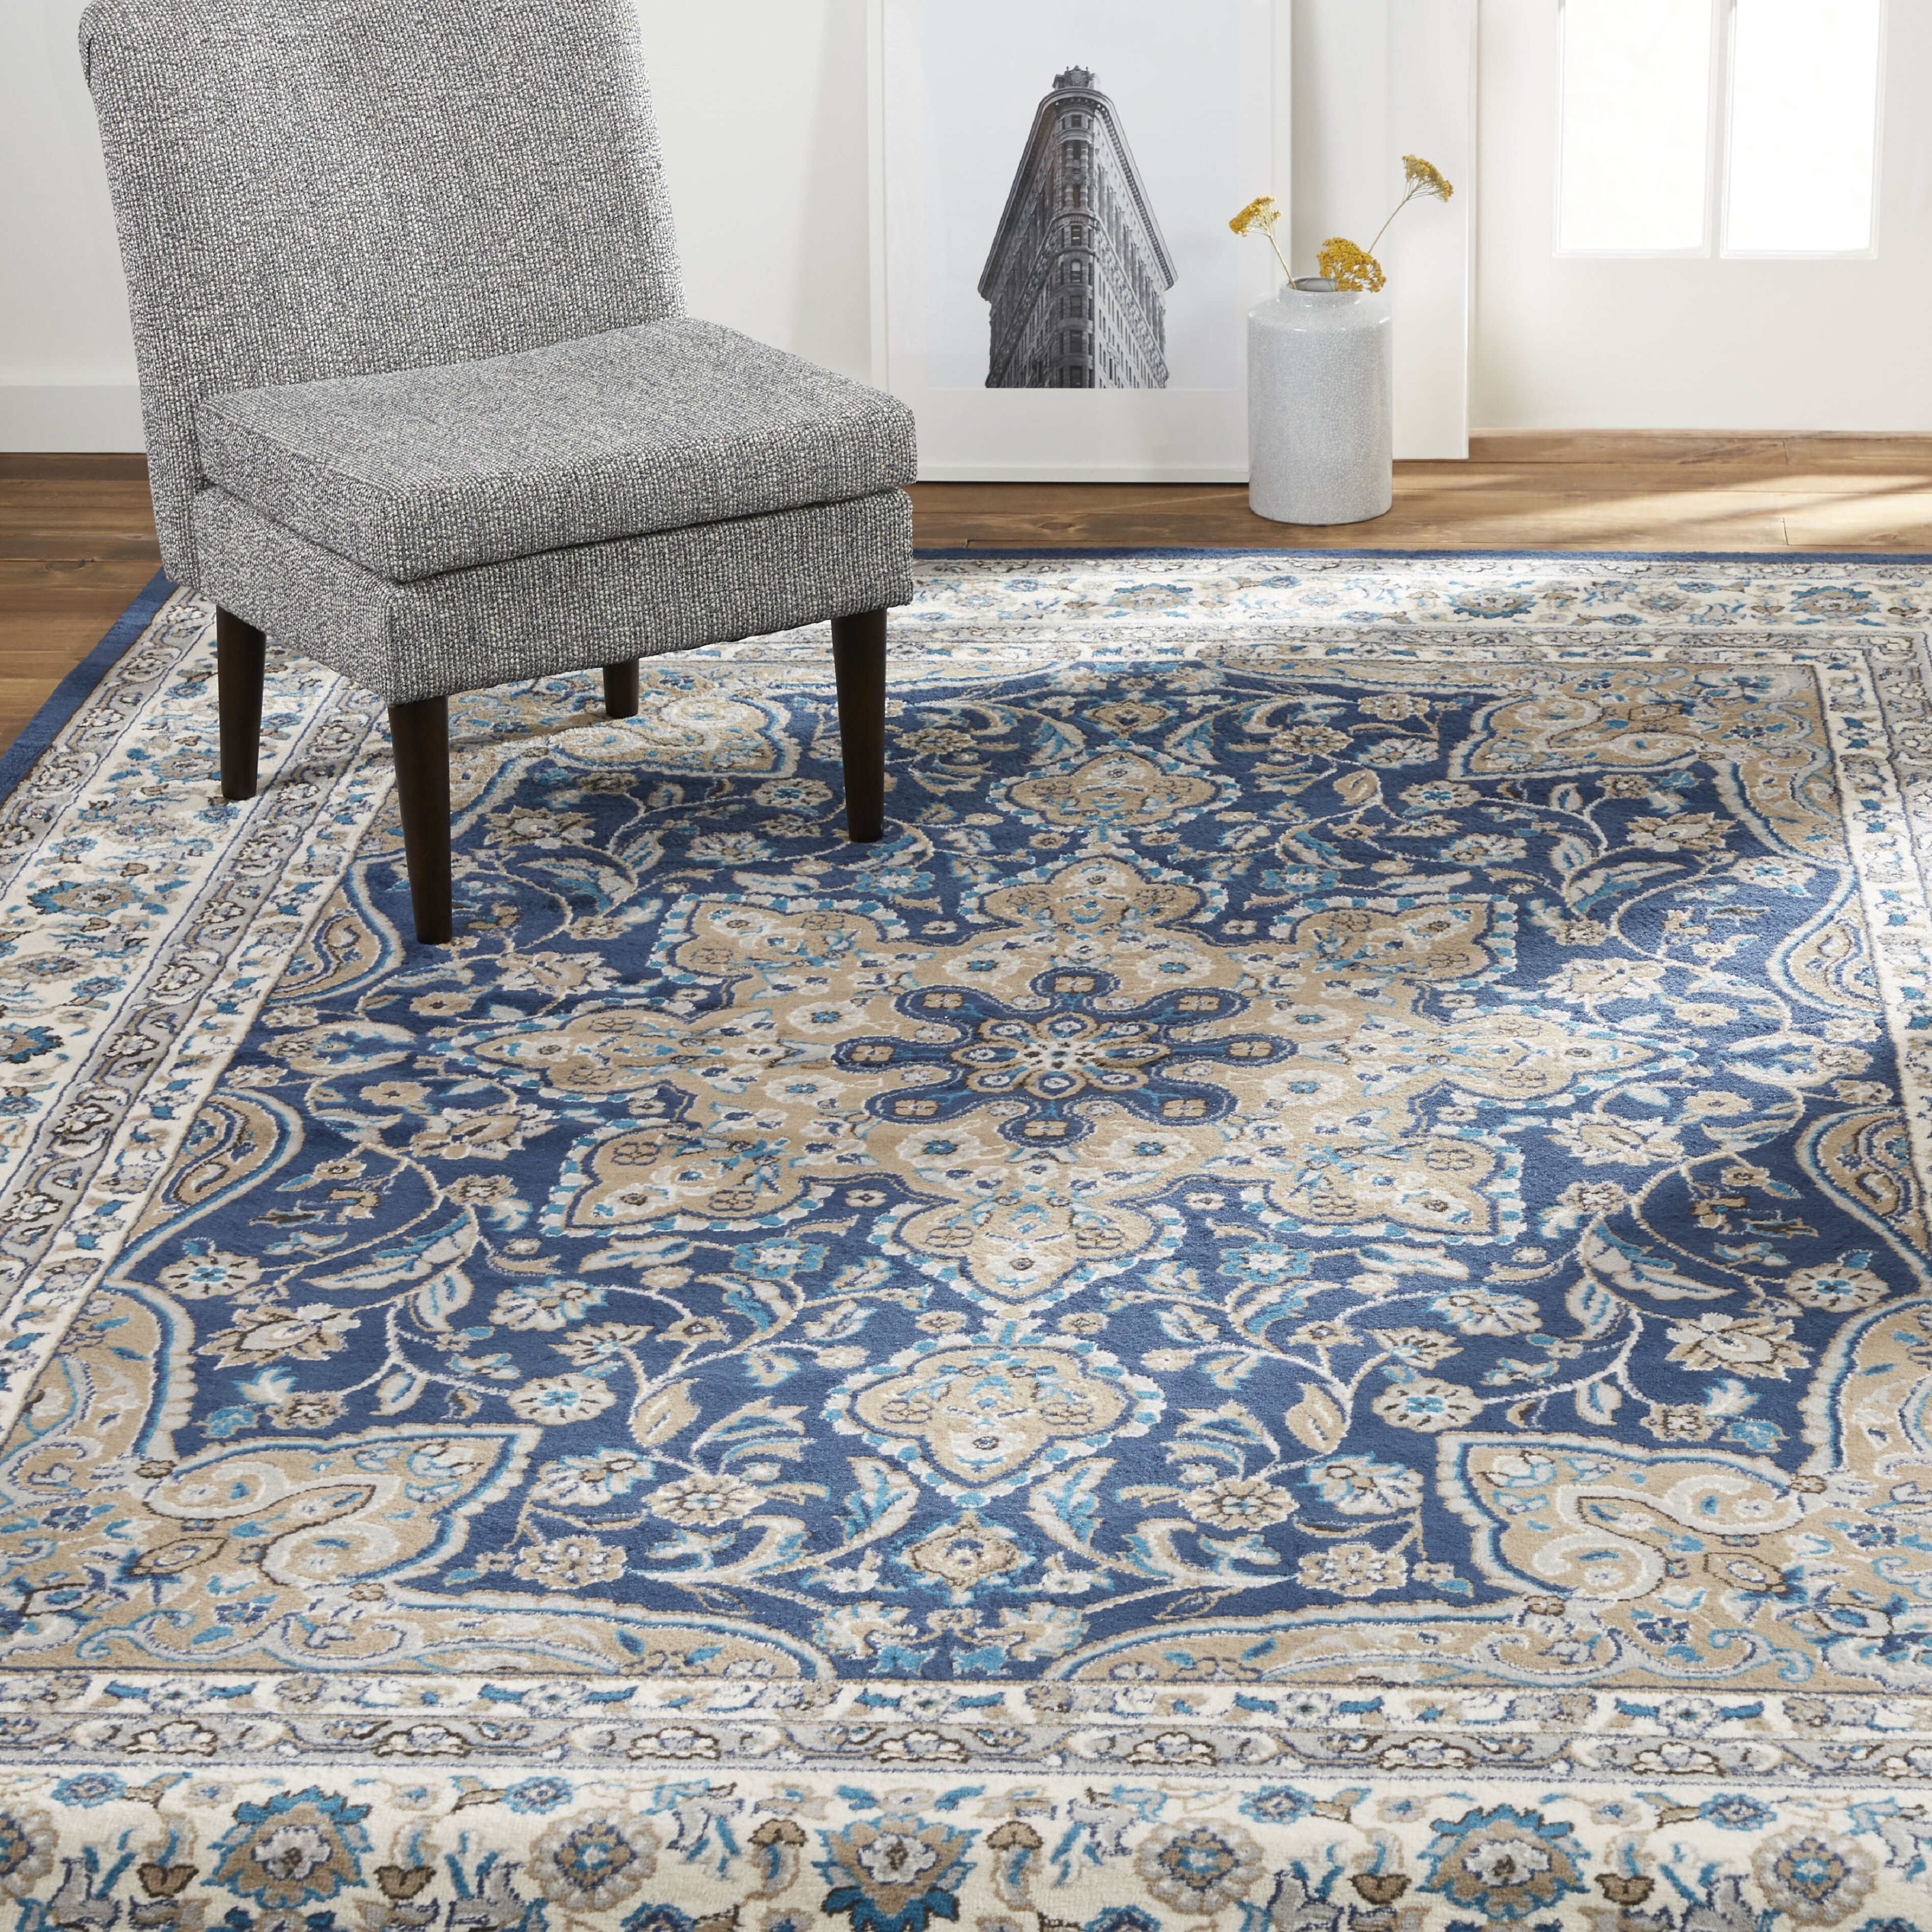 Black Blue Area Rugs You Ll Love In 2021 Wayfair